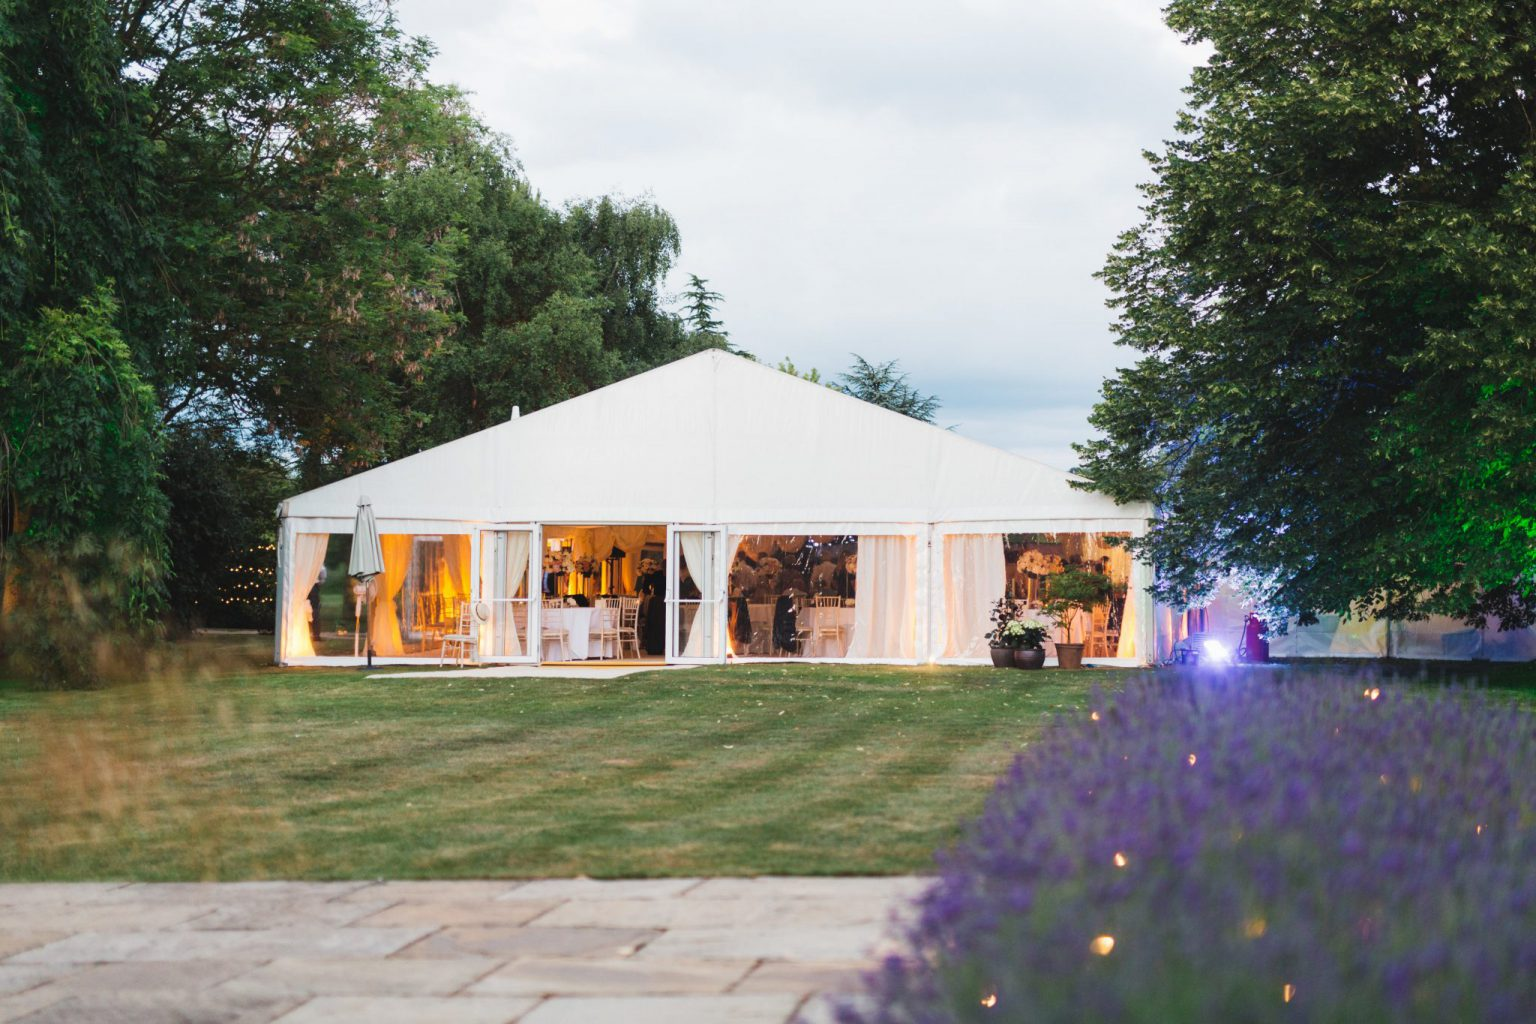 Clearspan wedding marquee - guest-ready